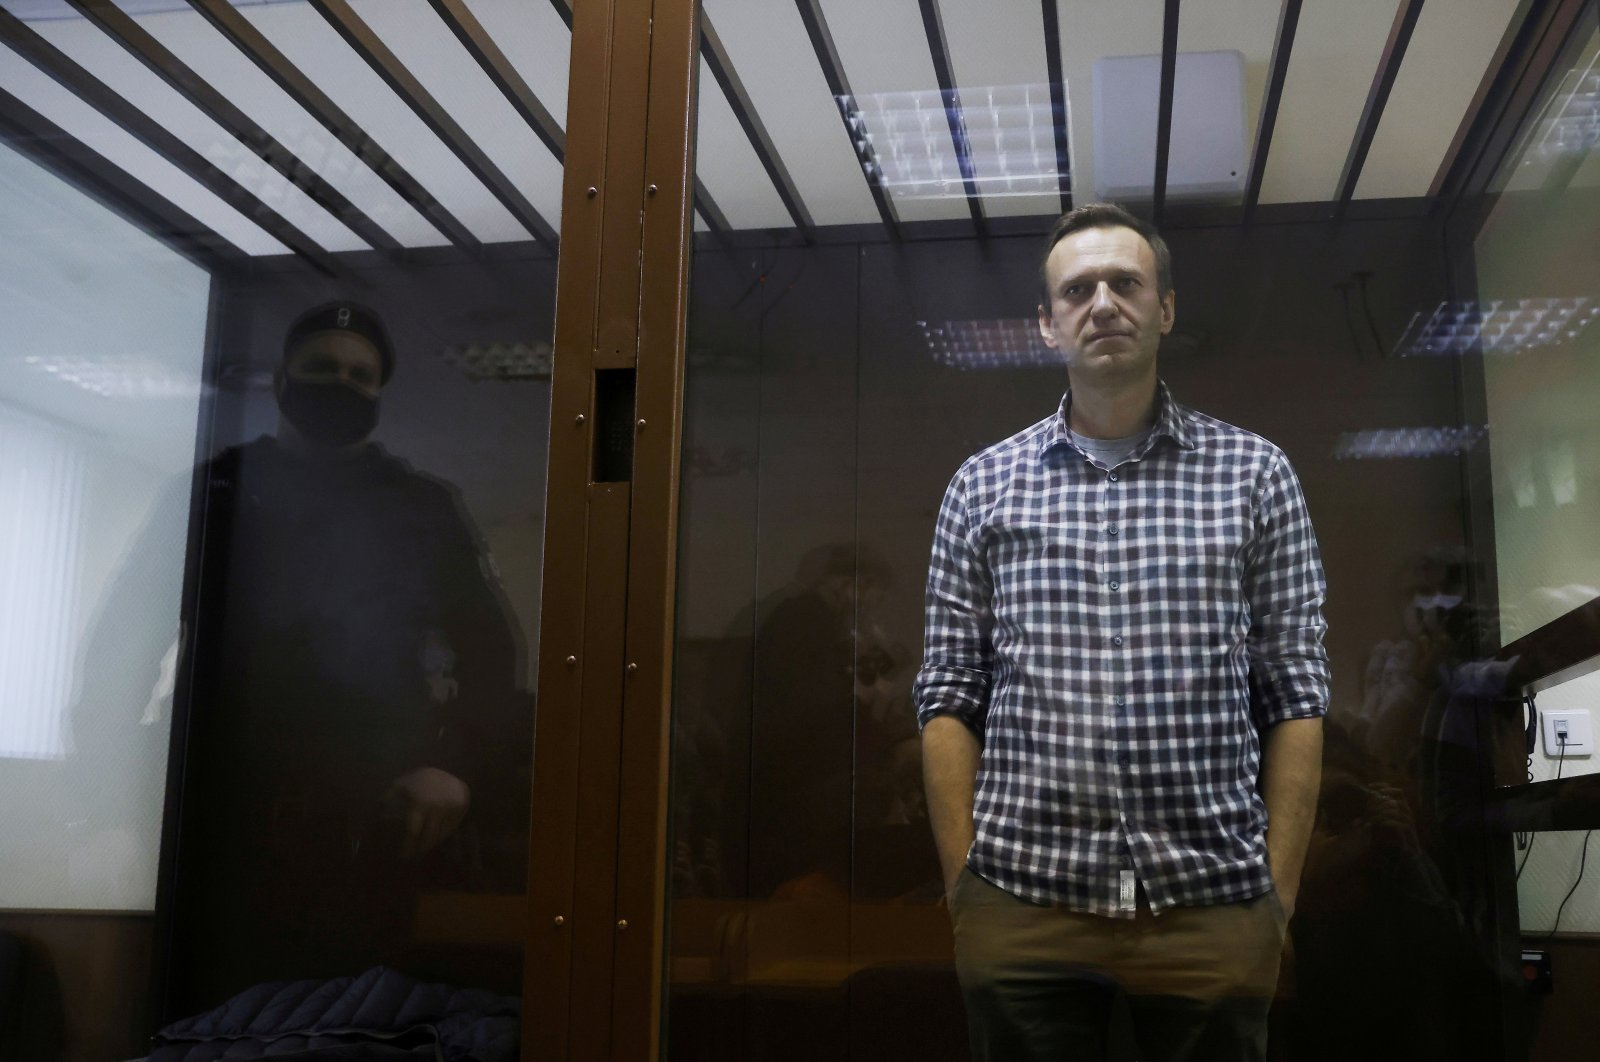 Russian opposition leader Alexei Navalny attends a court hearing in Moscow, Russia, Feb. 20, 2021. (Reuters Photo)